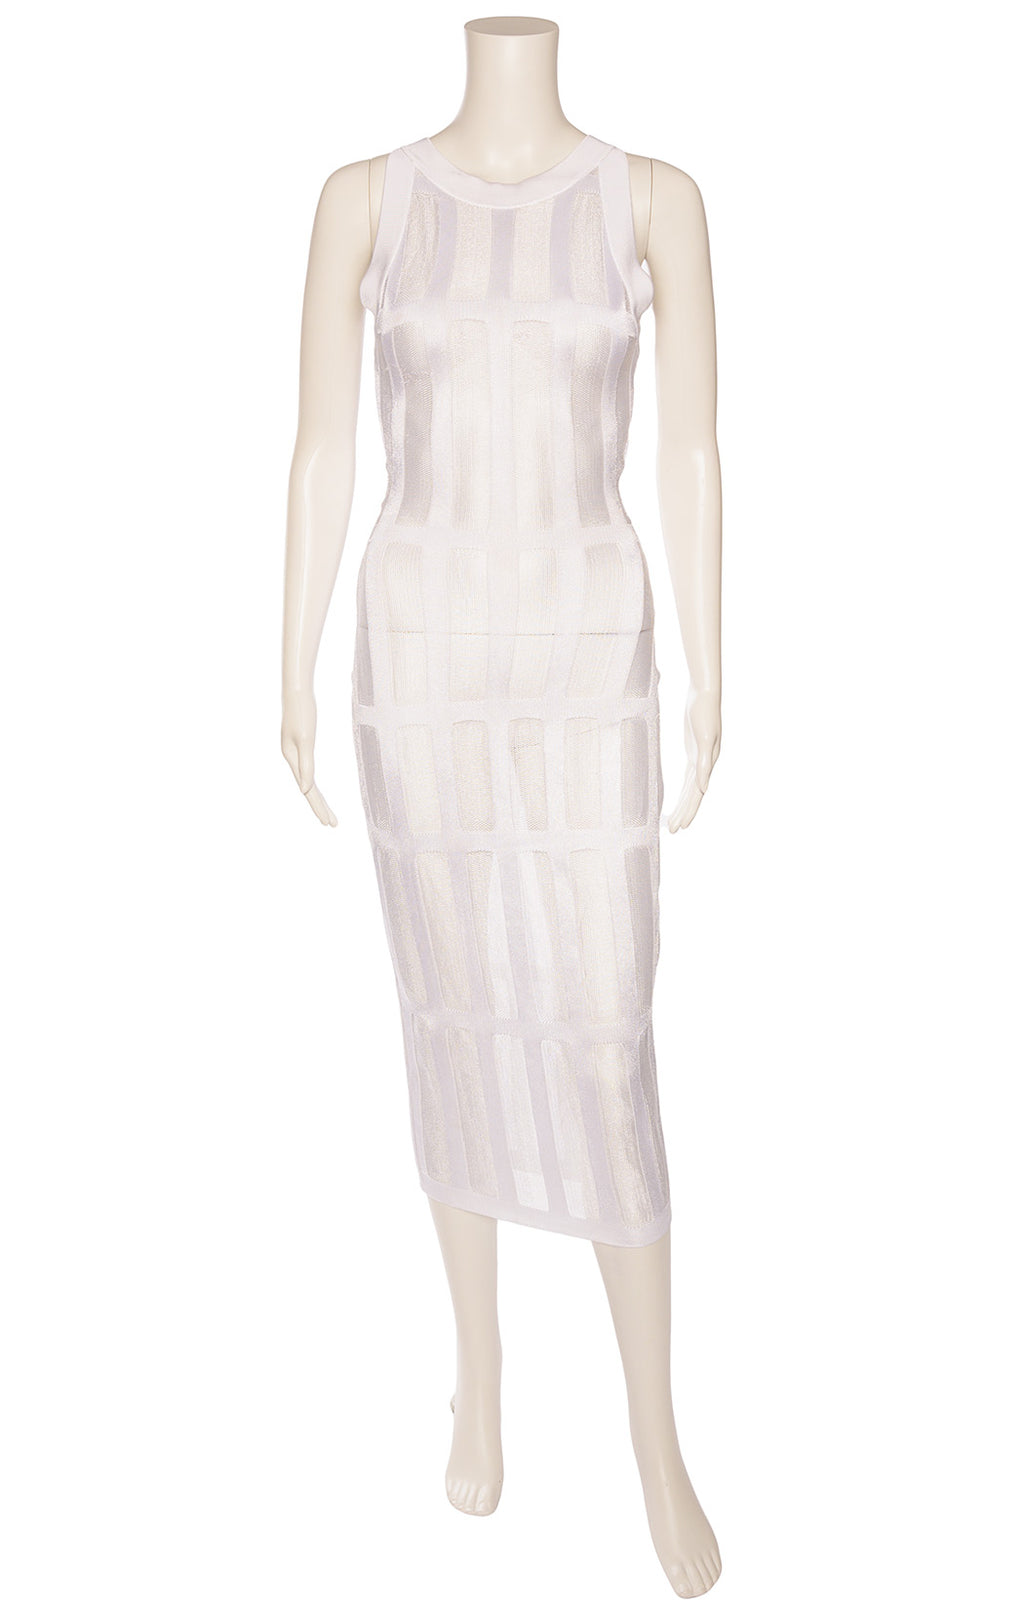 White sleeveless loose weave window pane design form fitting midi dress with back gold zipper